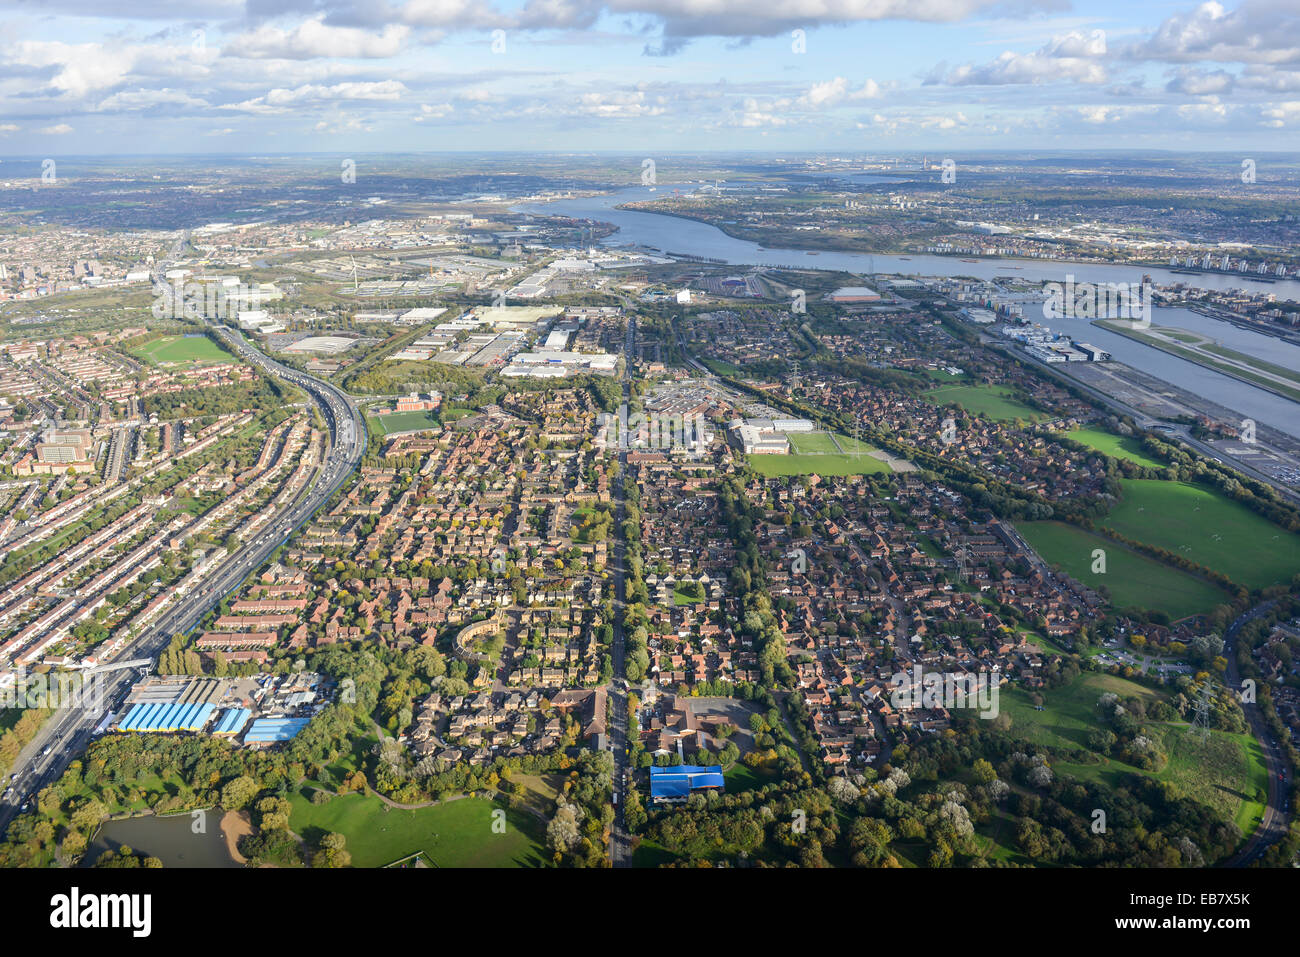 An aerial view of Beckton, an urban area of Newham, East London with the River Thames and Dartford visible in the - Stock Image